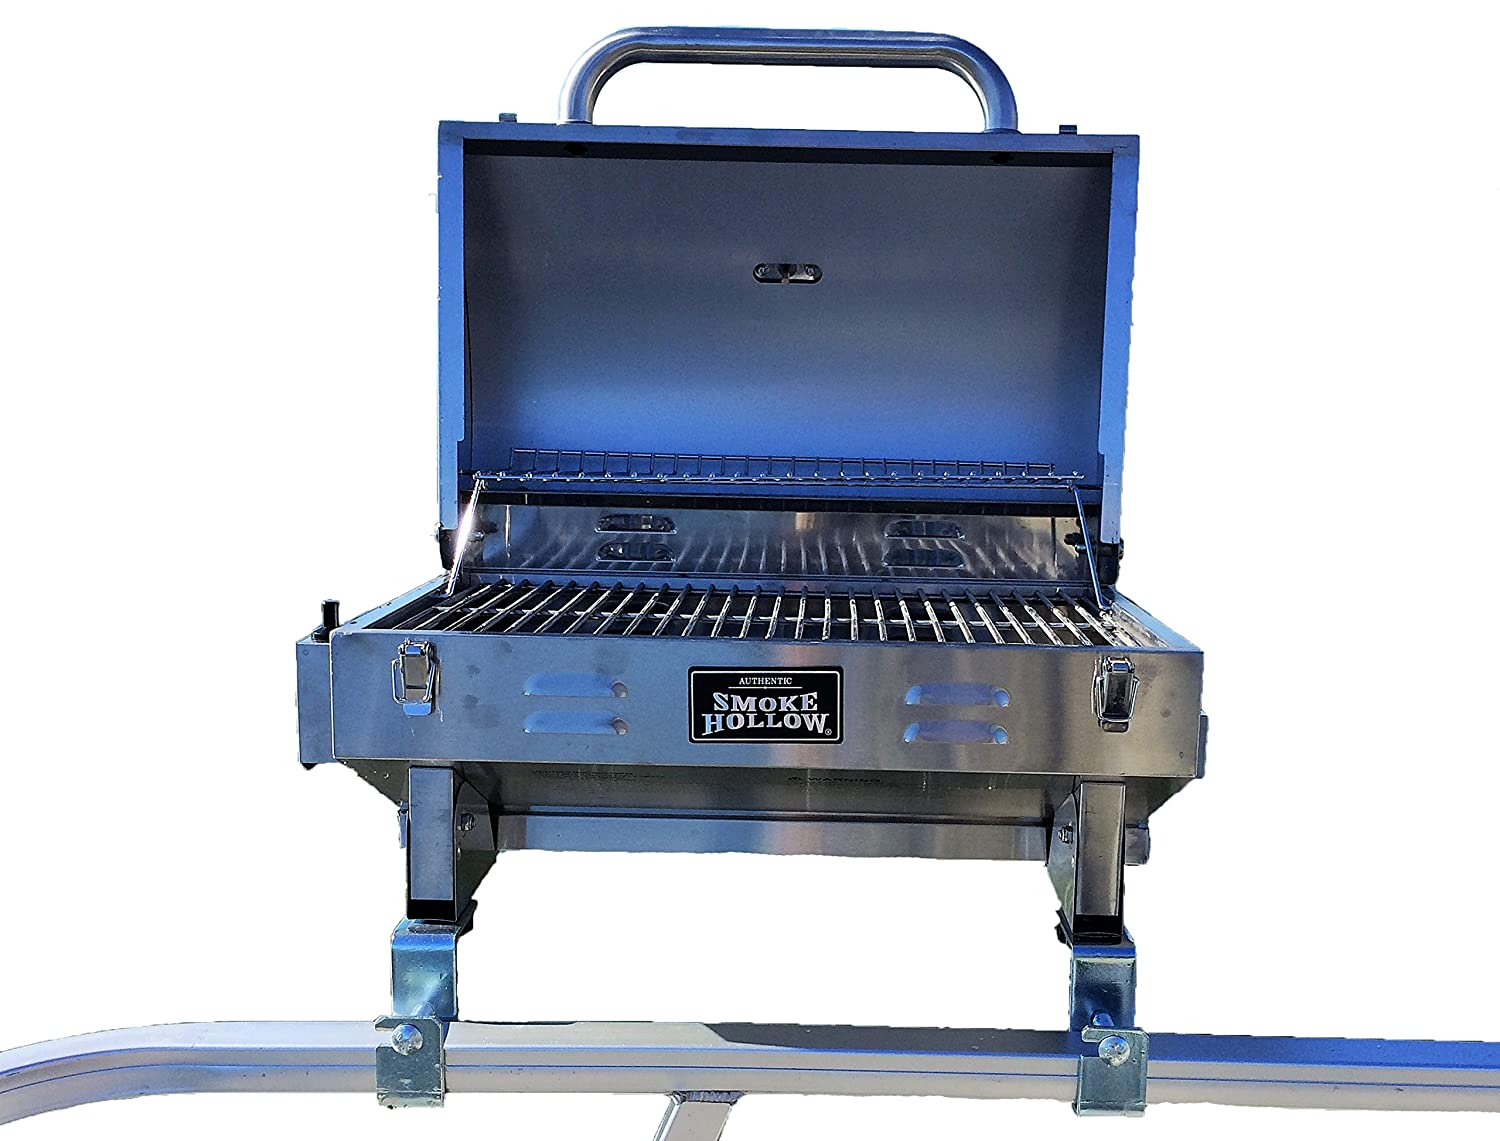 Smoke Hollow Grill For Pontoon Boats - Pontoon Boat Accessories Grill